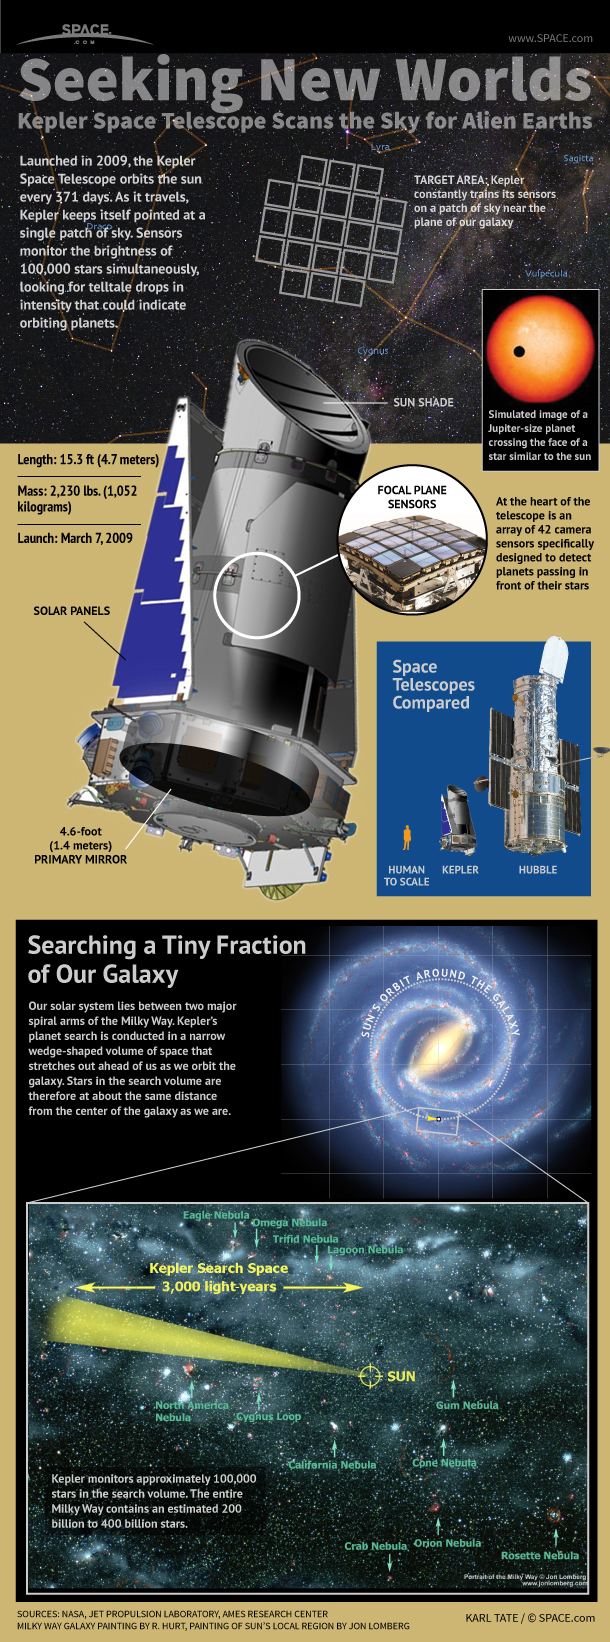 How the Planet-Finding Kepler Space Telescope Works